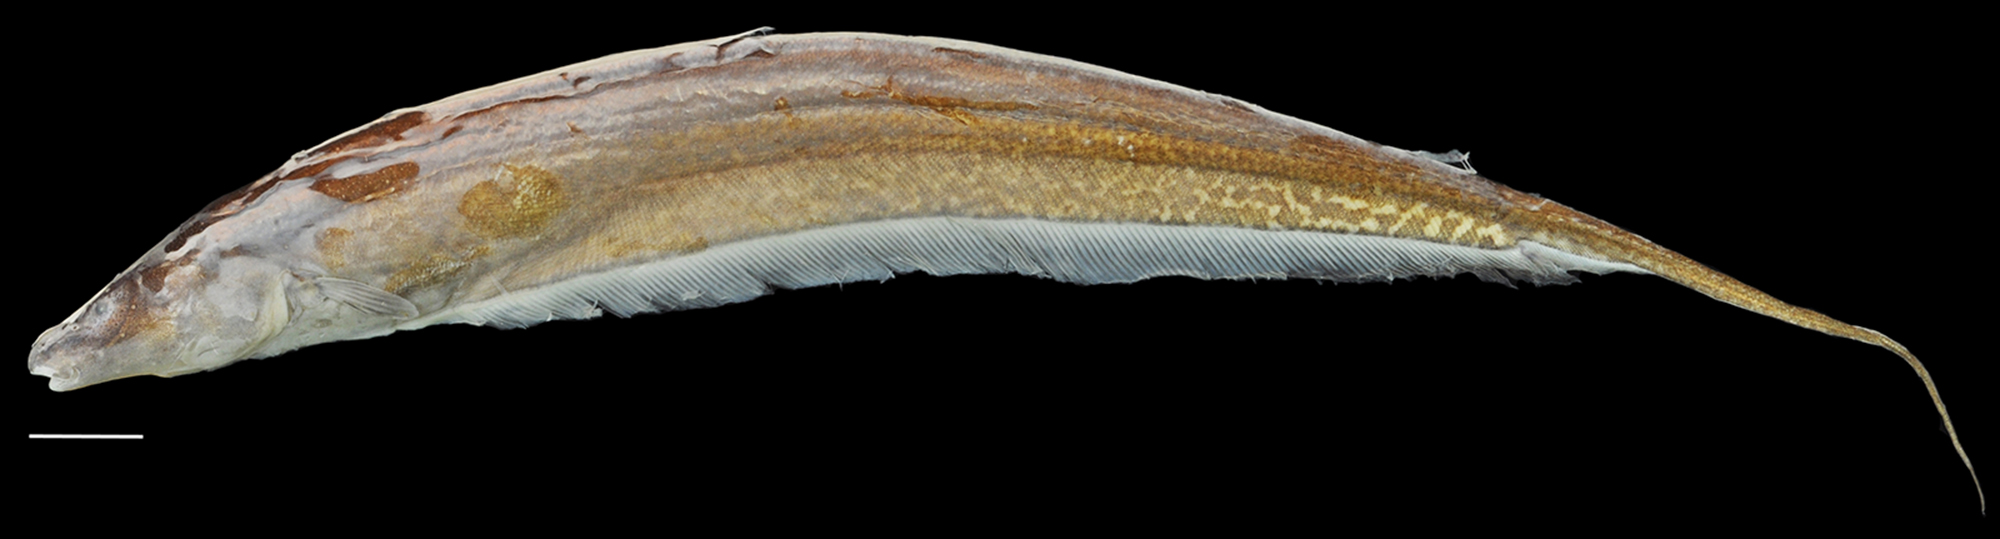 Genus of electric fish discovered in lost world of south america new genus of electric fish discovered in lost world of south america sciox Images